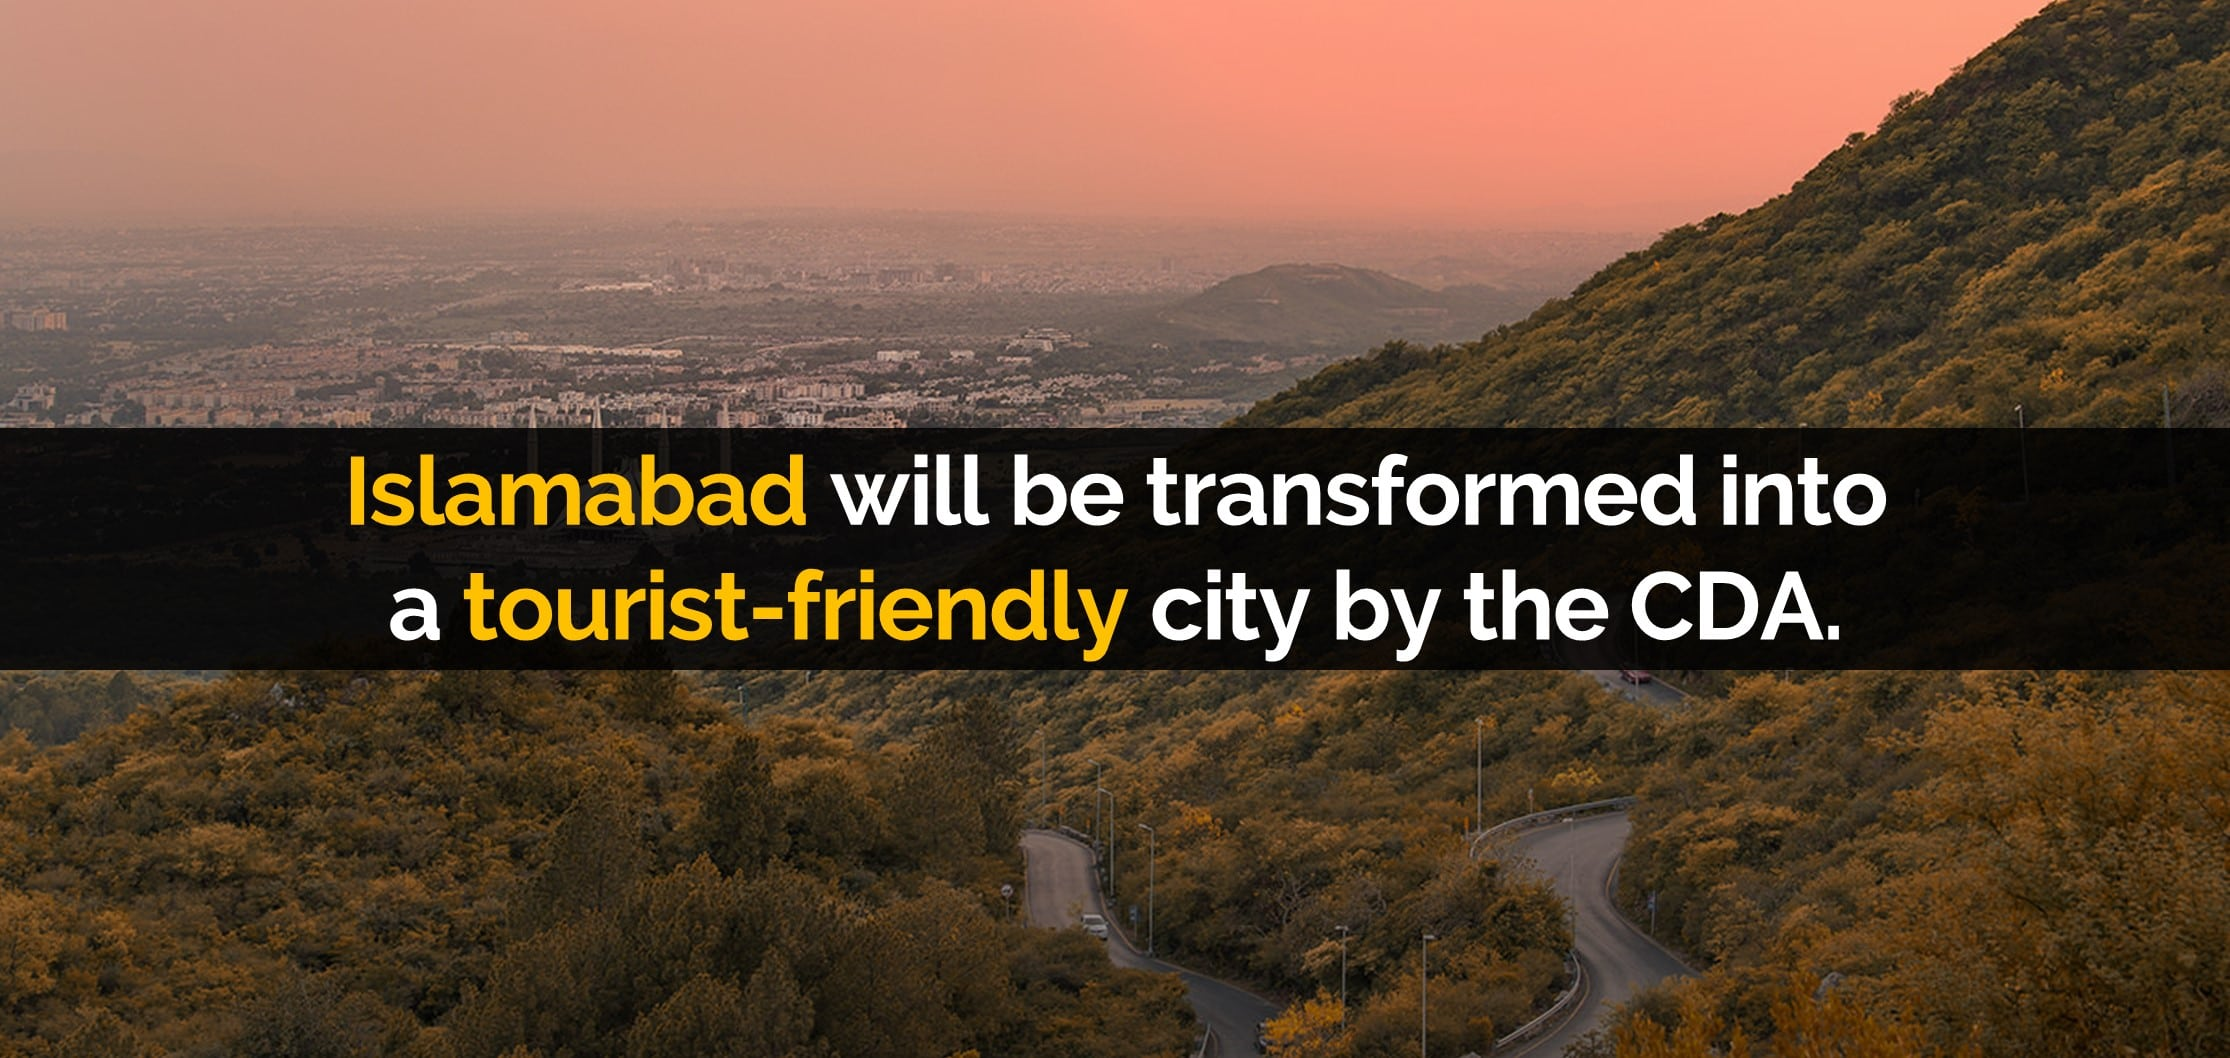 Islamabad will be transformed into a tourist-friendly city by the CDA